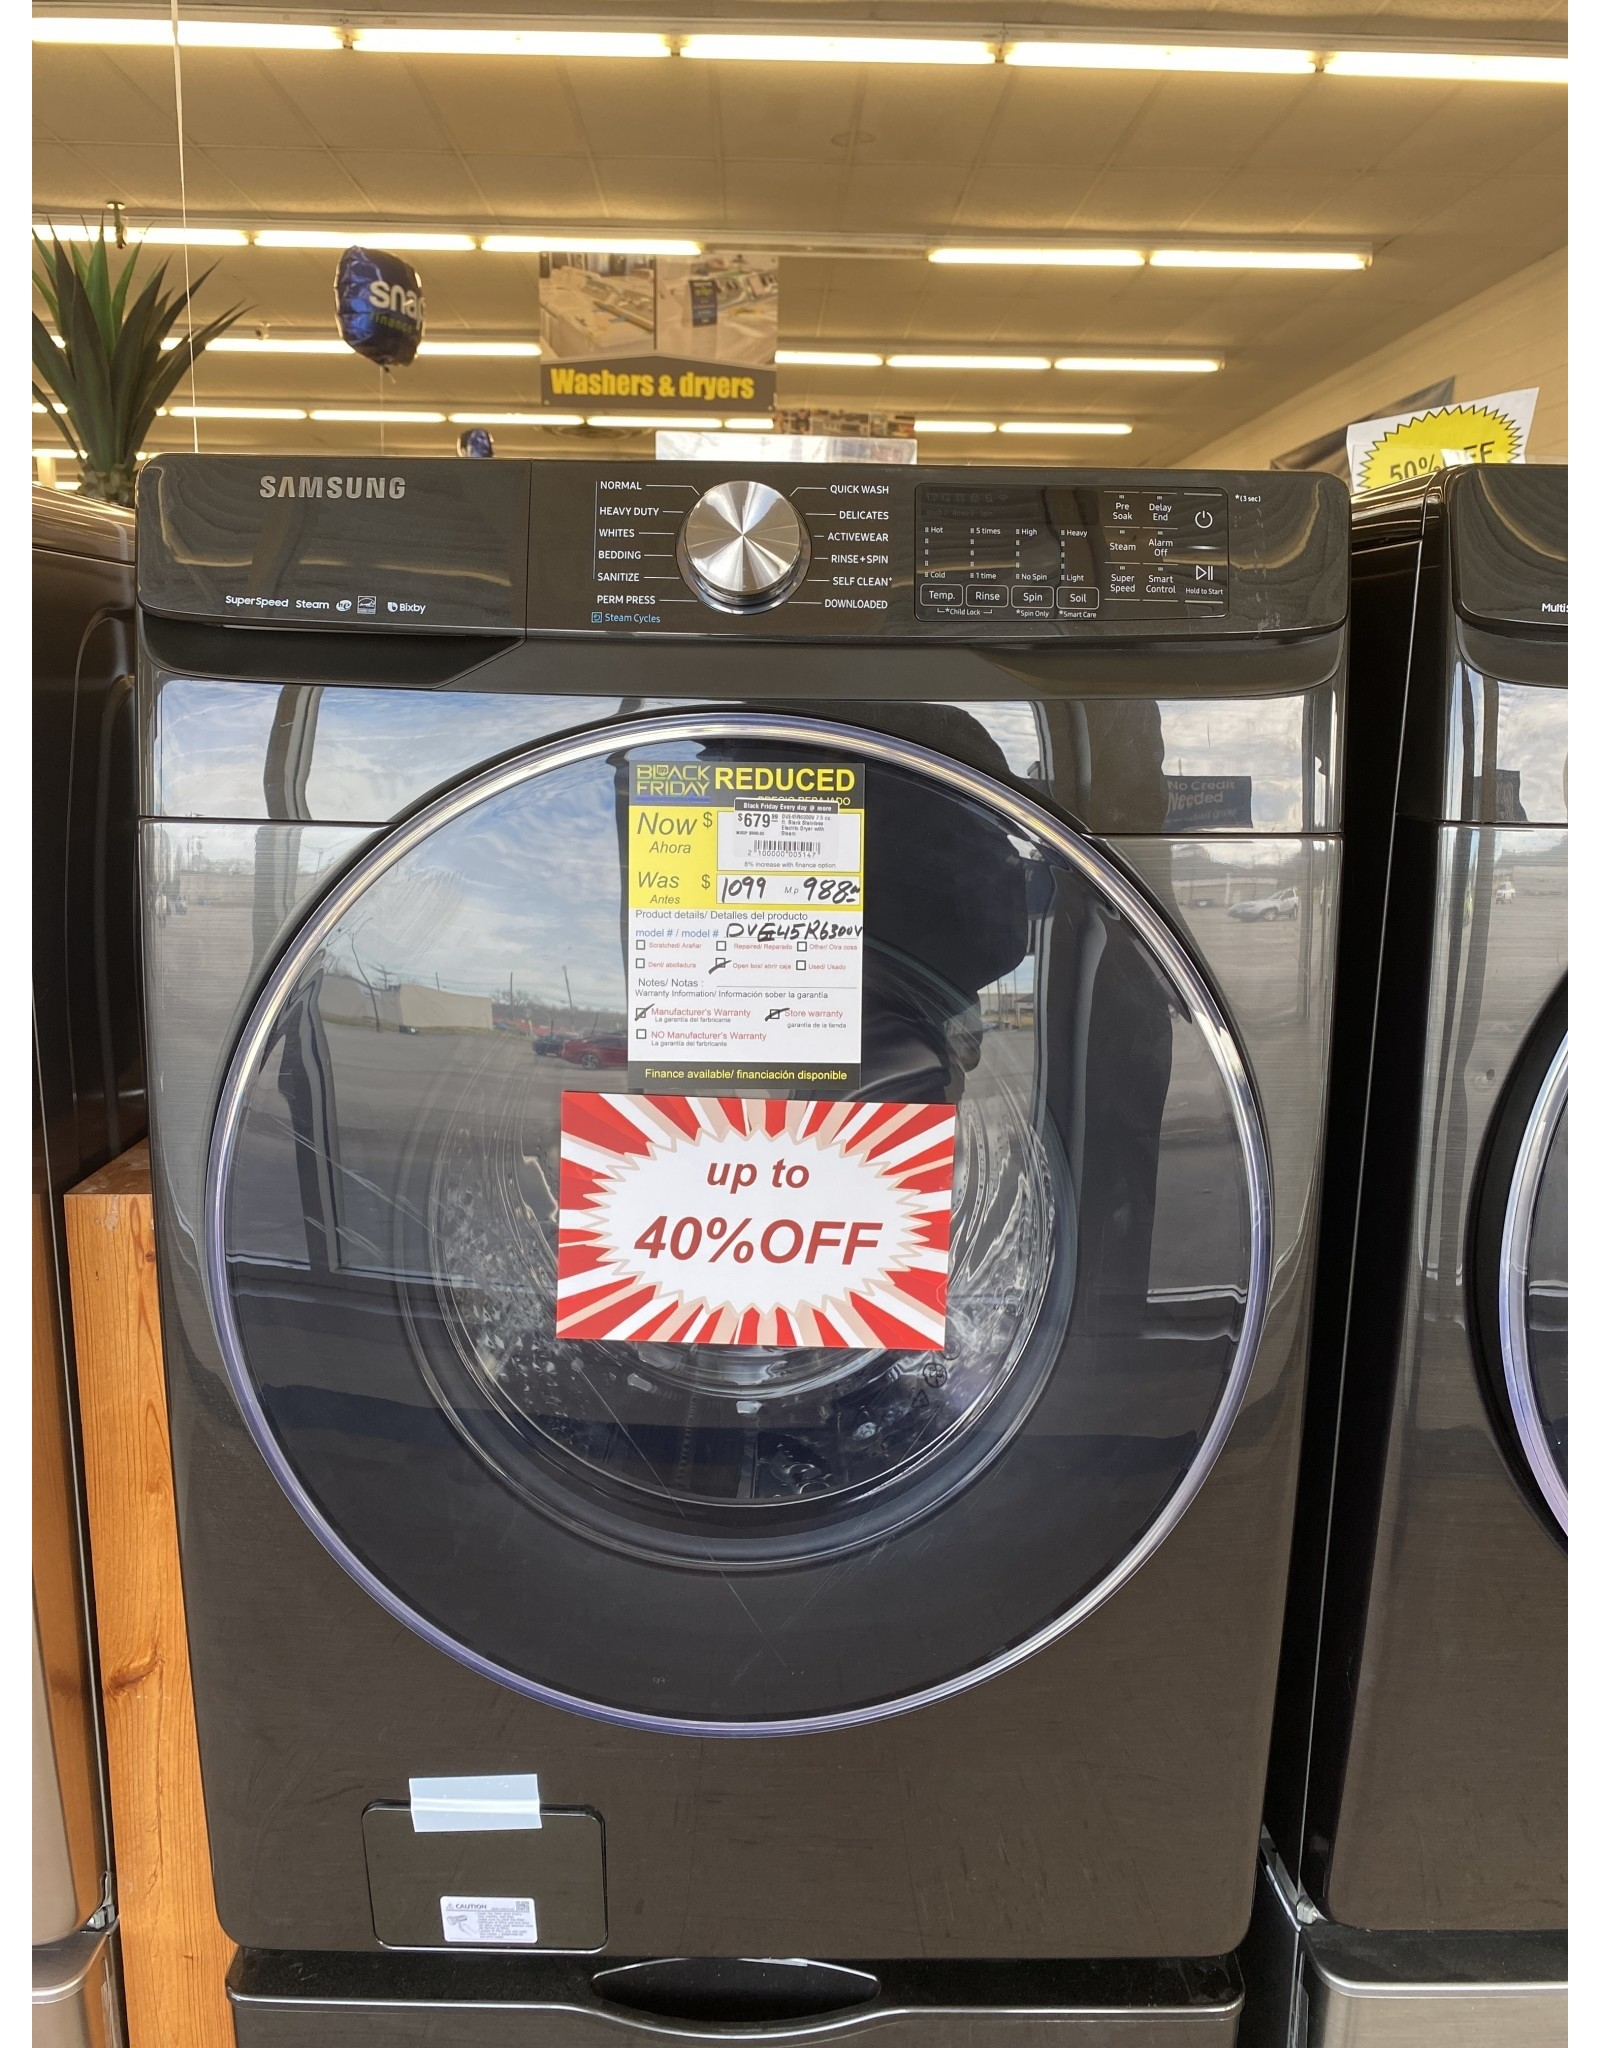 SAMSUNG DVE45R6300V 7.5 cu. ft. Black Stainless Electric Dryer with Steam